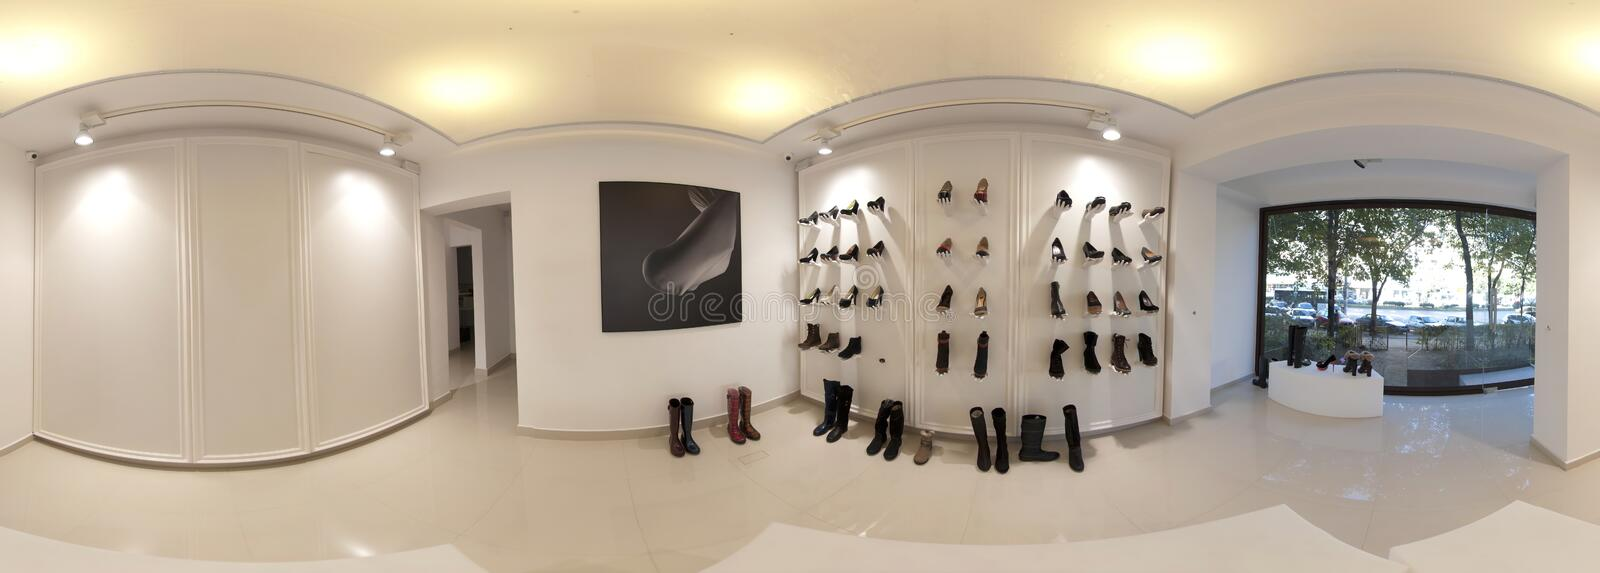 Download Interior of a shop editorial stock photo. Image of bright - 23516588